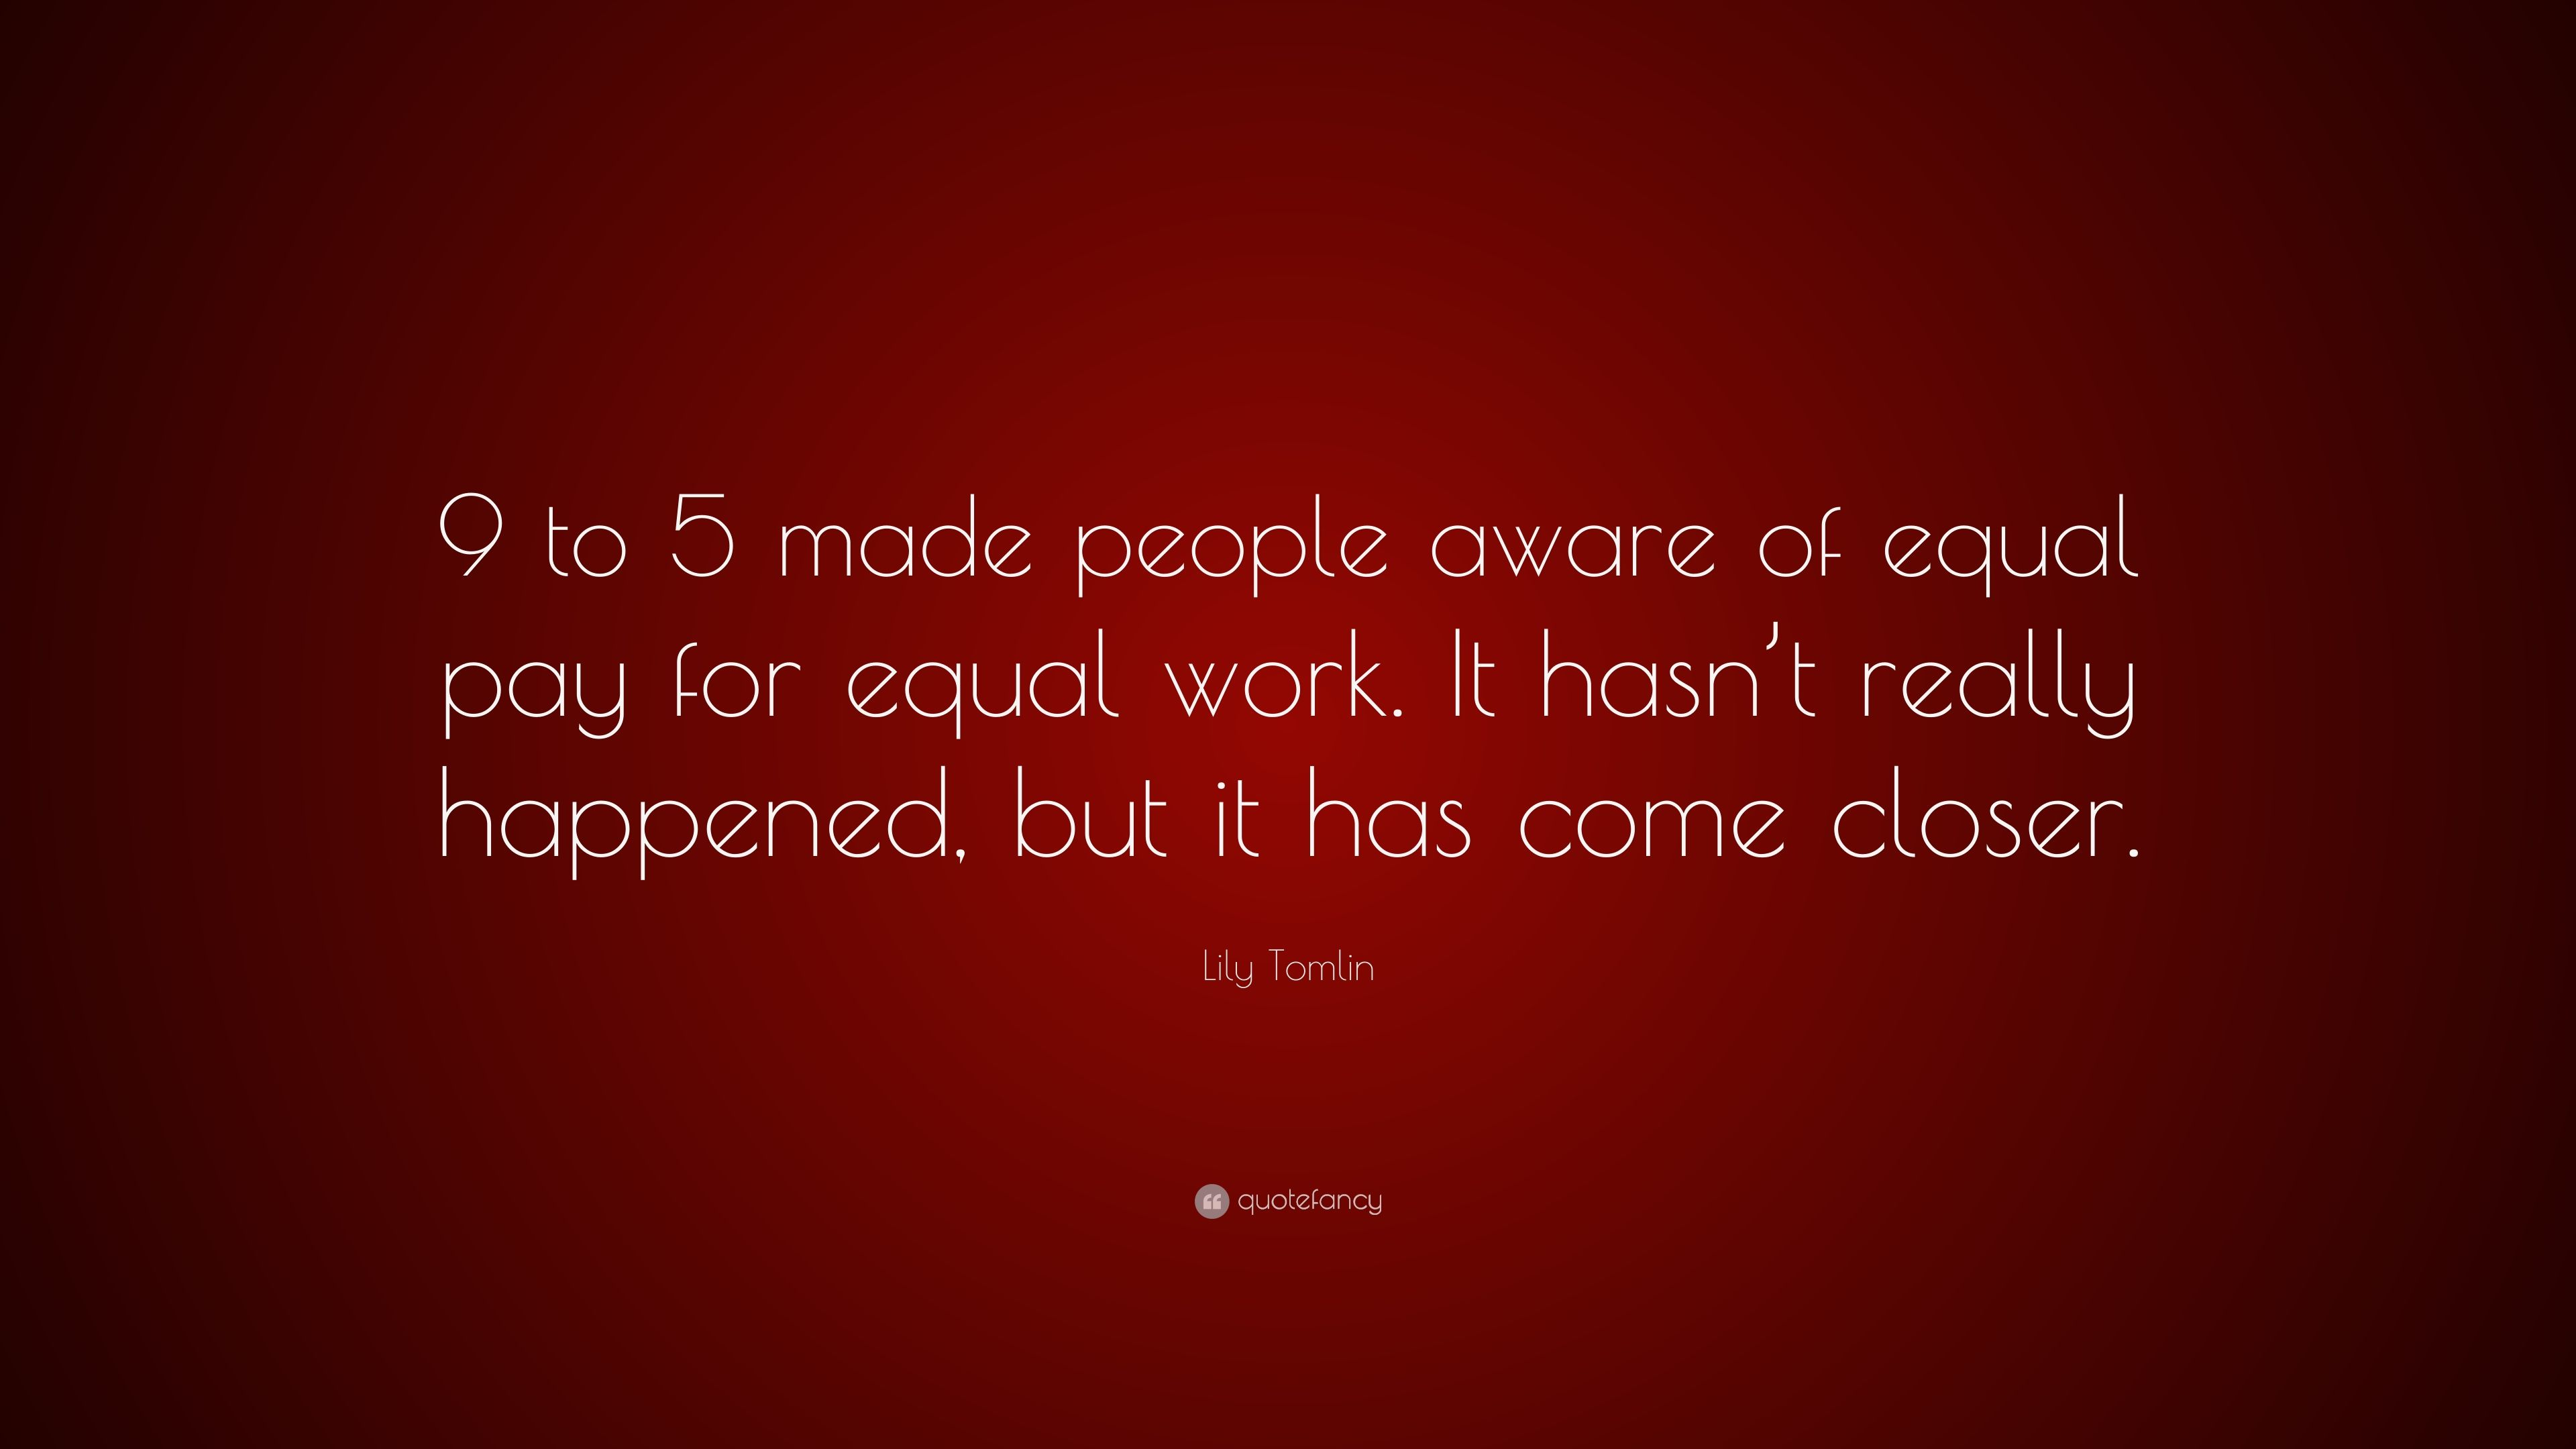 Lily tomlin quote 9 to 5 made people aware of equal pay for equal